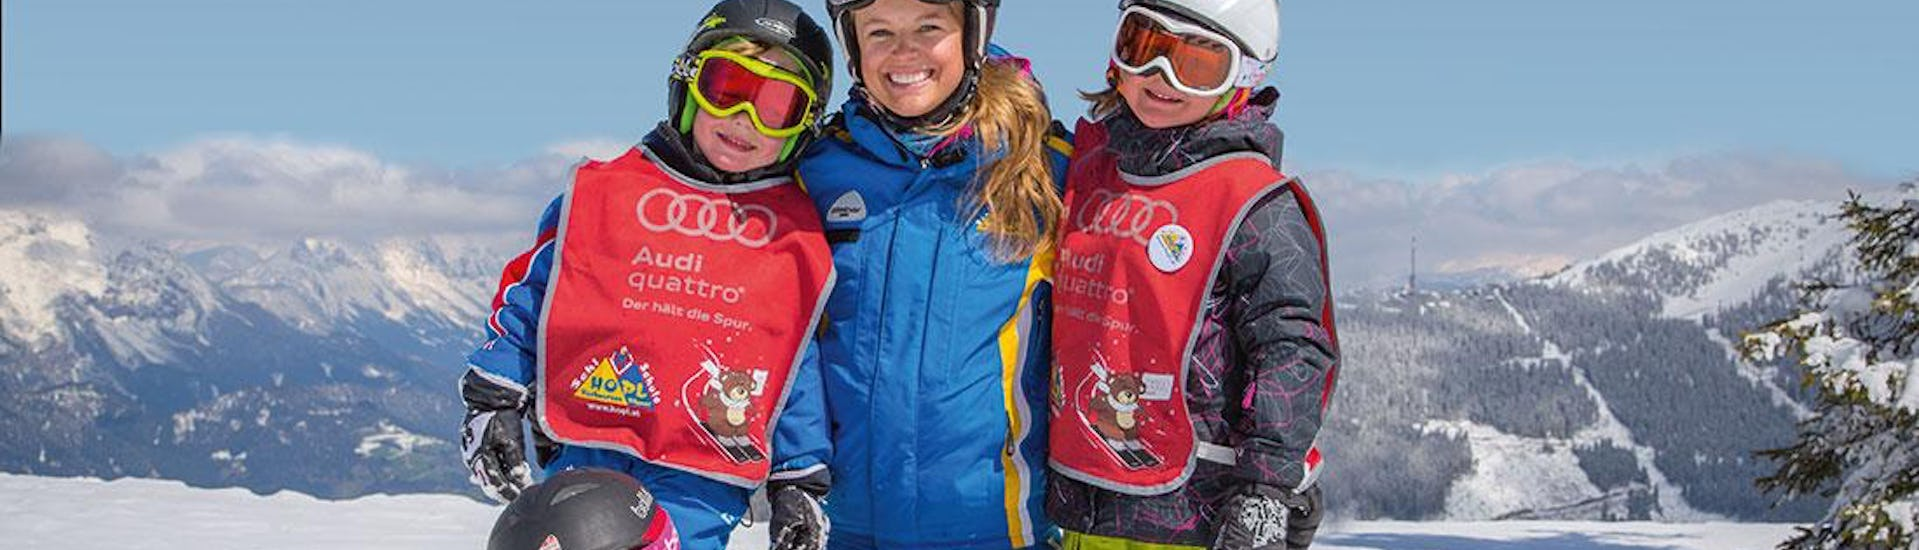 Ski Instructor Private for Kids and Adults